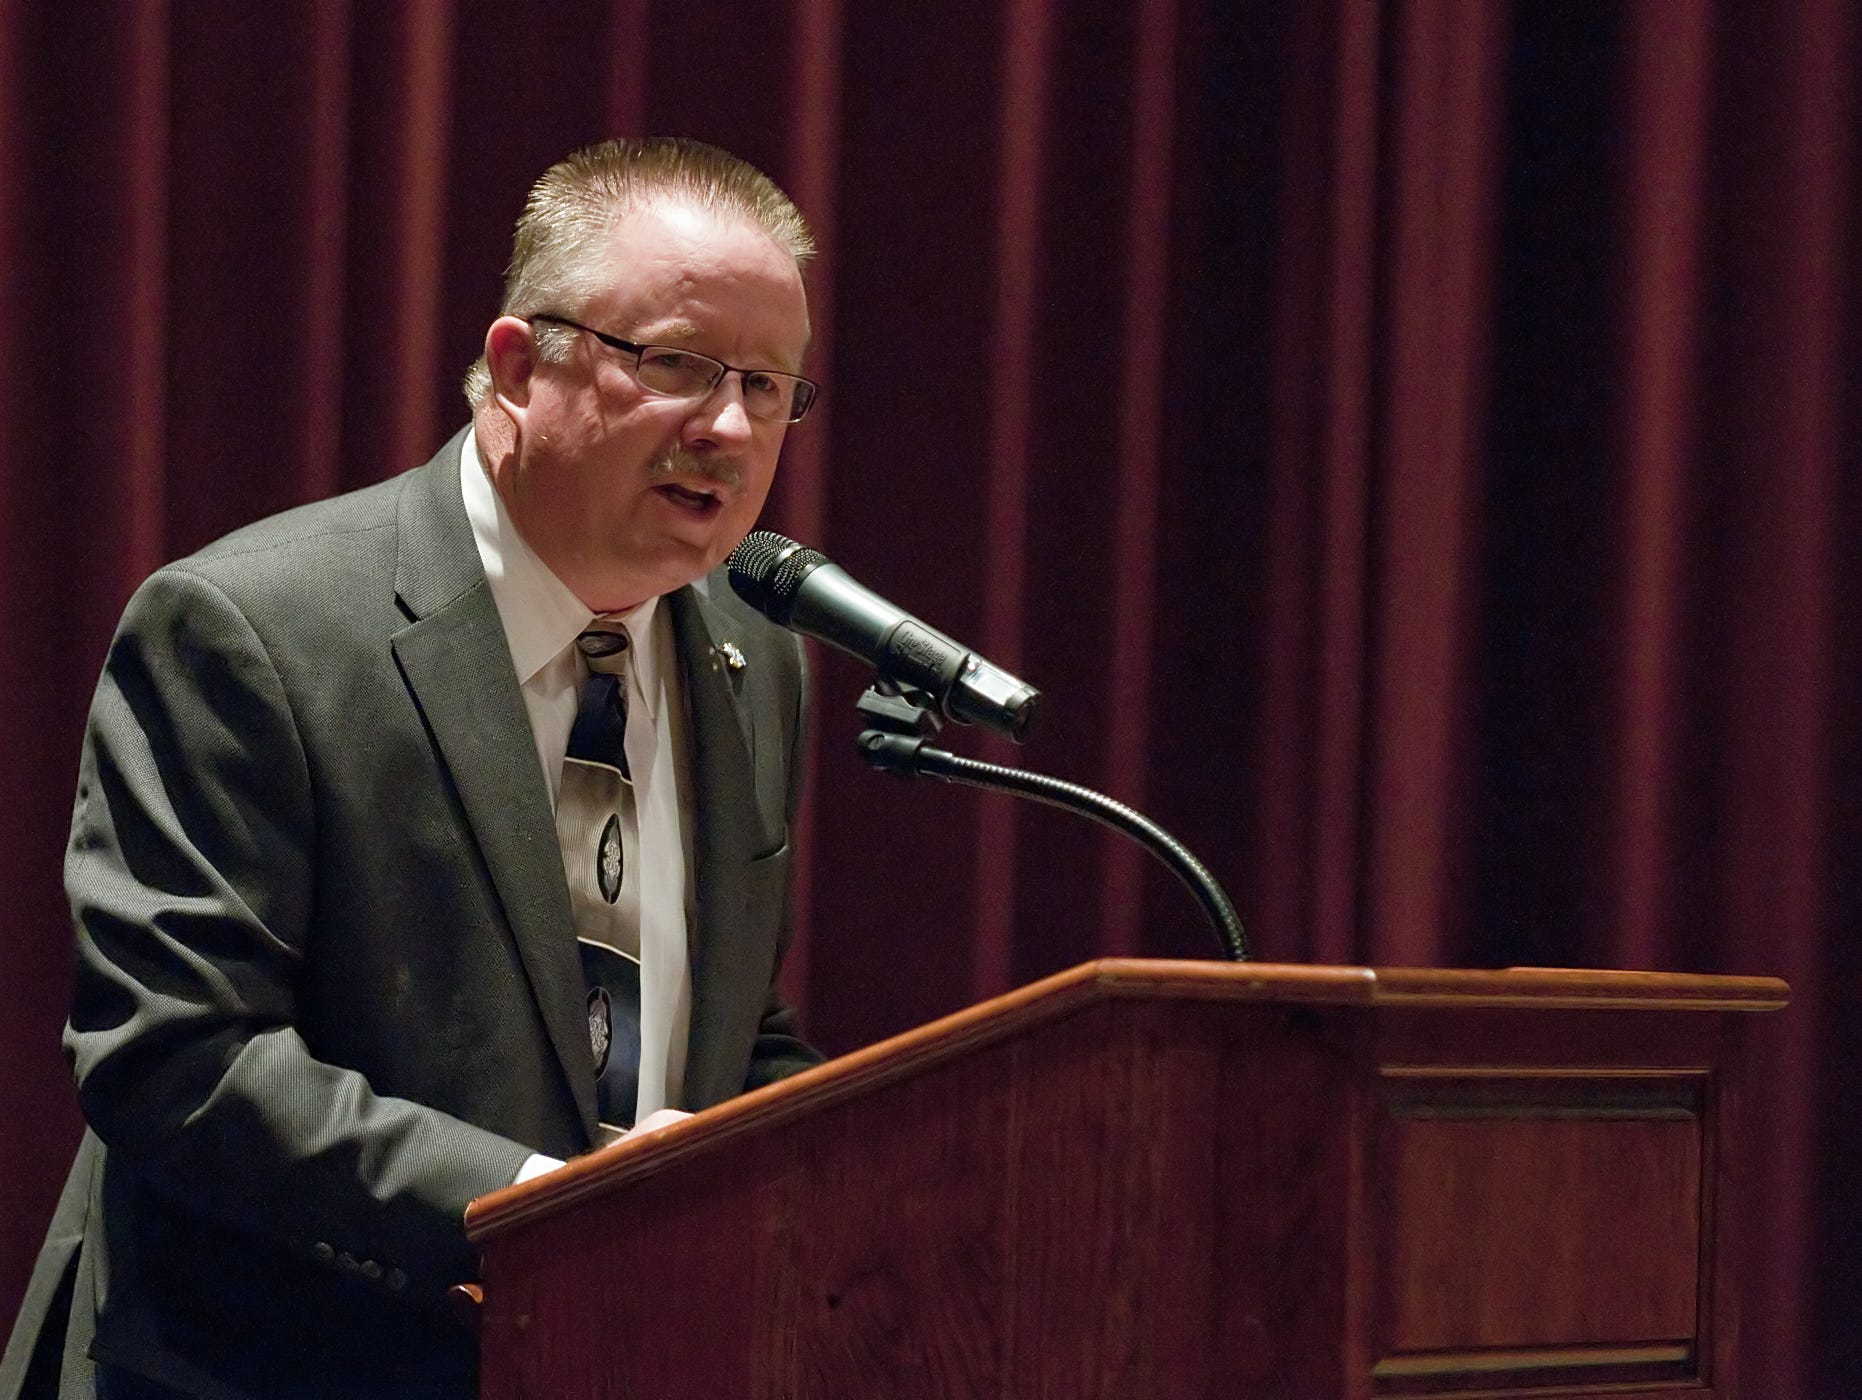 Indiana High School Athletic Association Commissioner Bobby Cox spoke to a crowd during a town hall meeting April 17, 2012, at Plainfield High School.